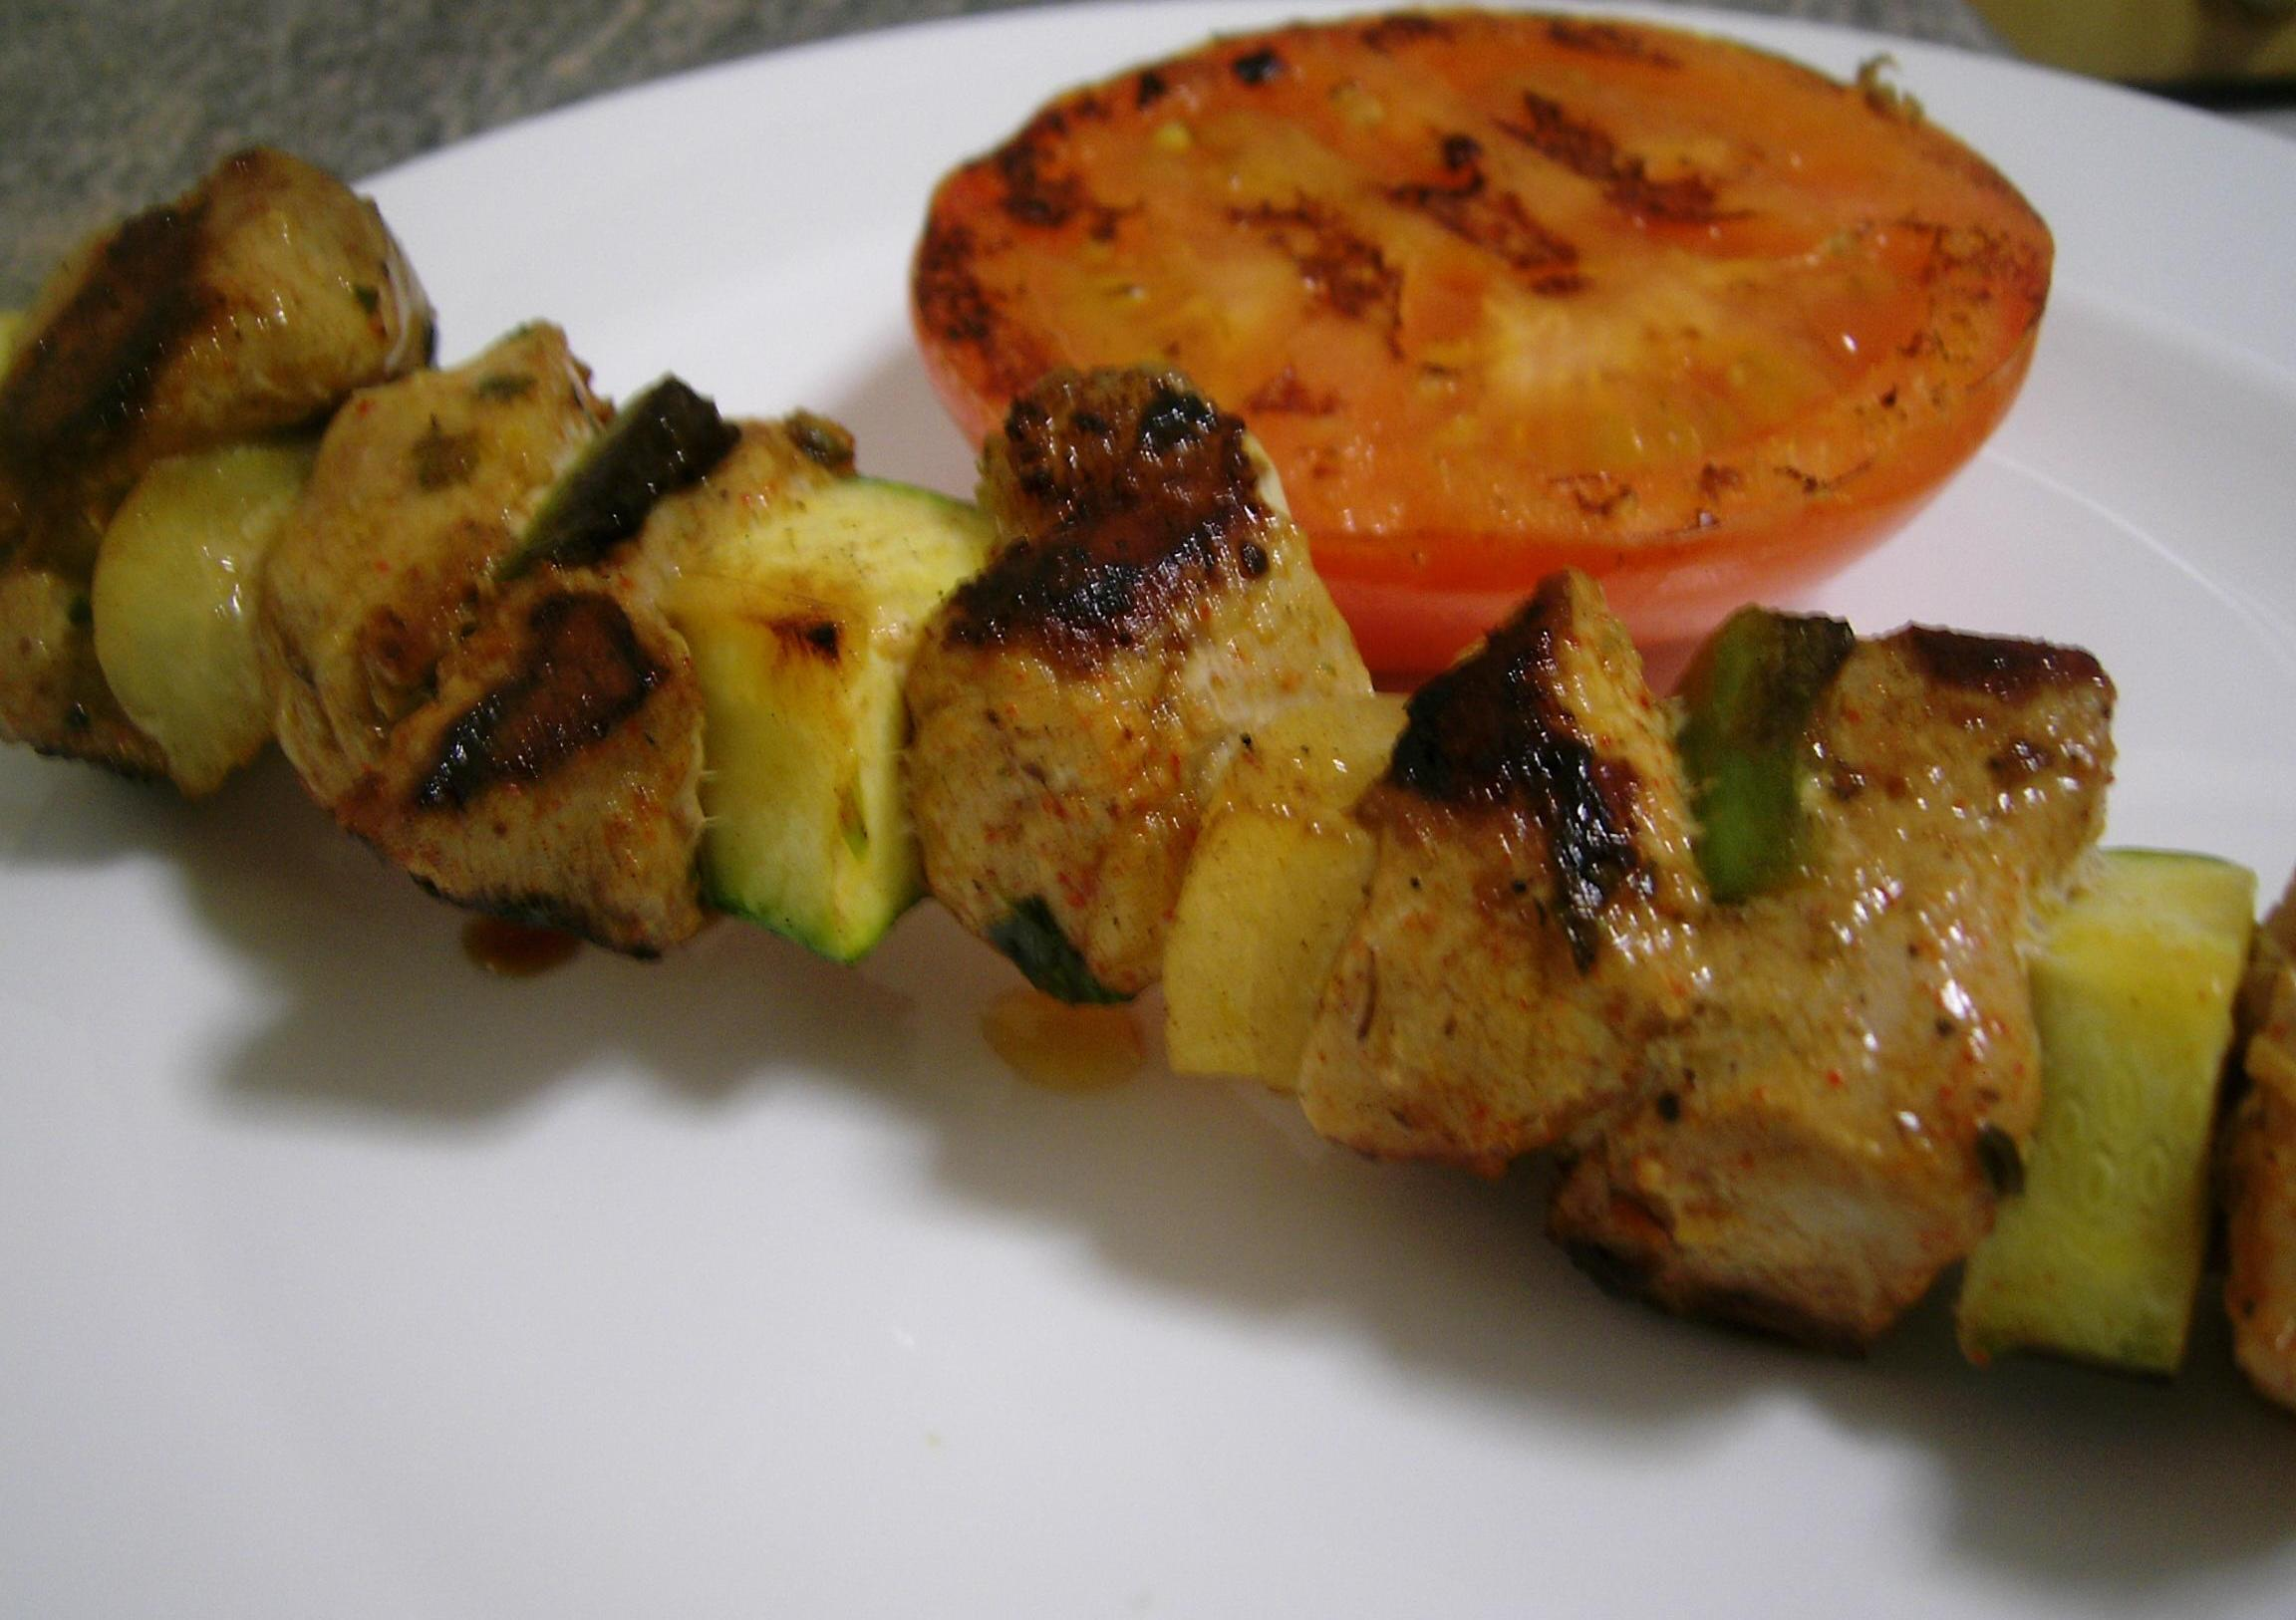 Pin brochetas de carne res on pinterest - Carne de cerdo con verduras ...